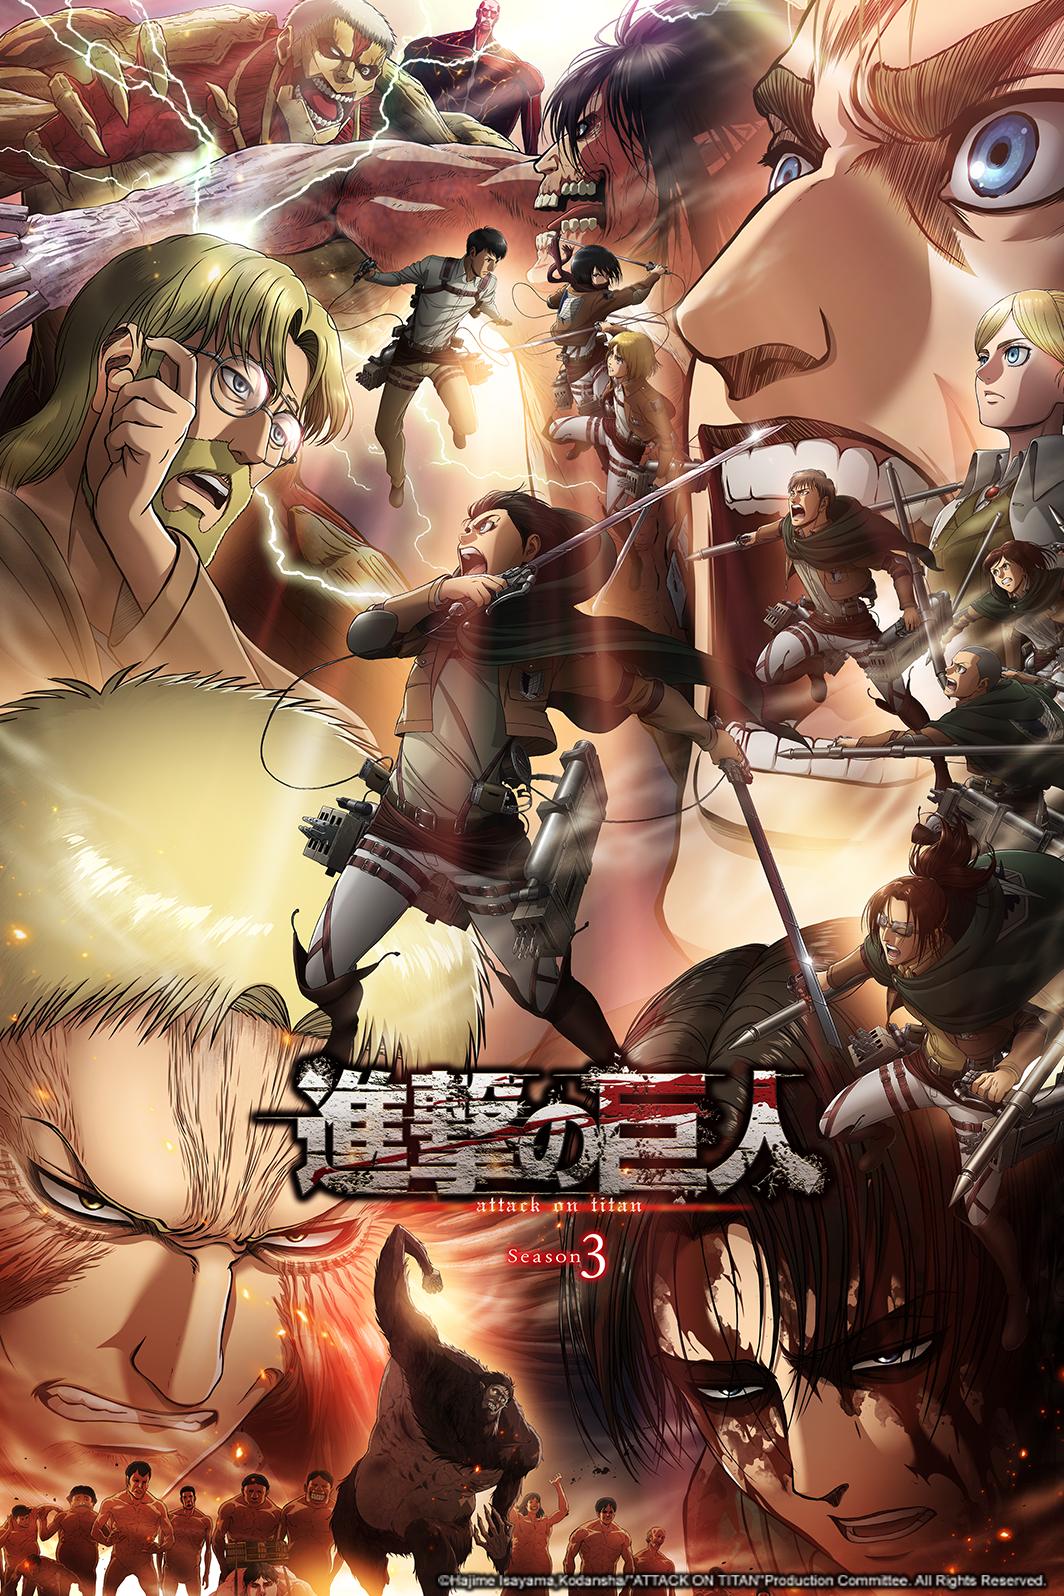 Download Wallpaper Anime Attack On Titan Brainly